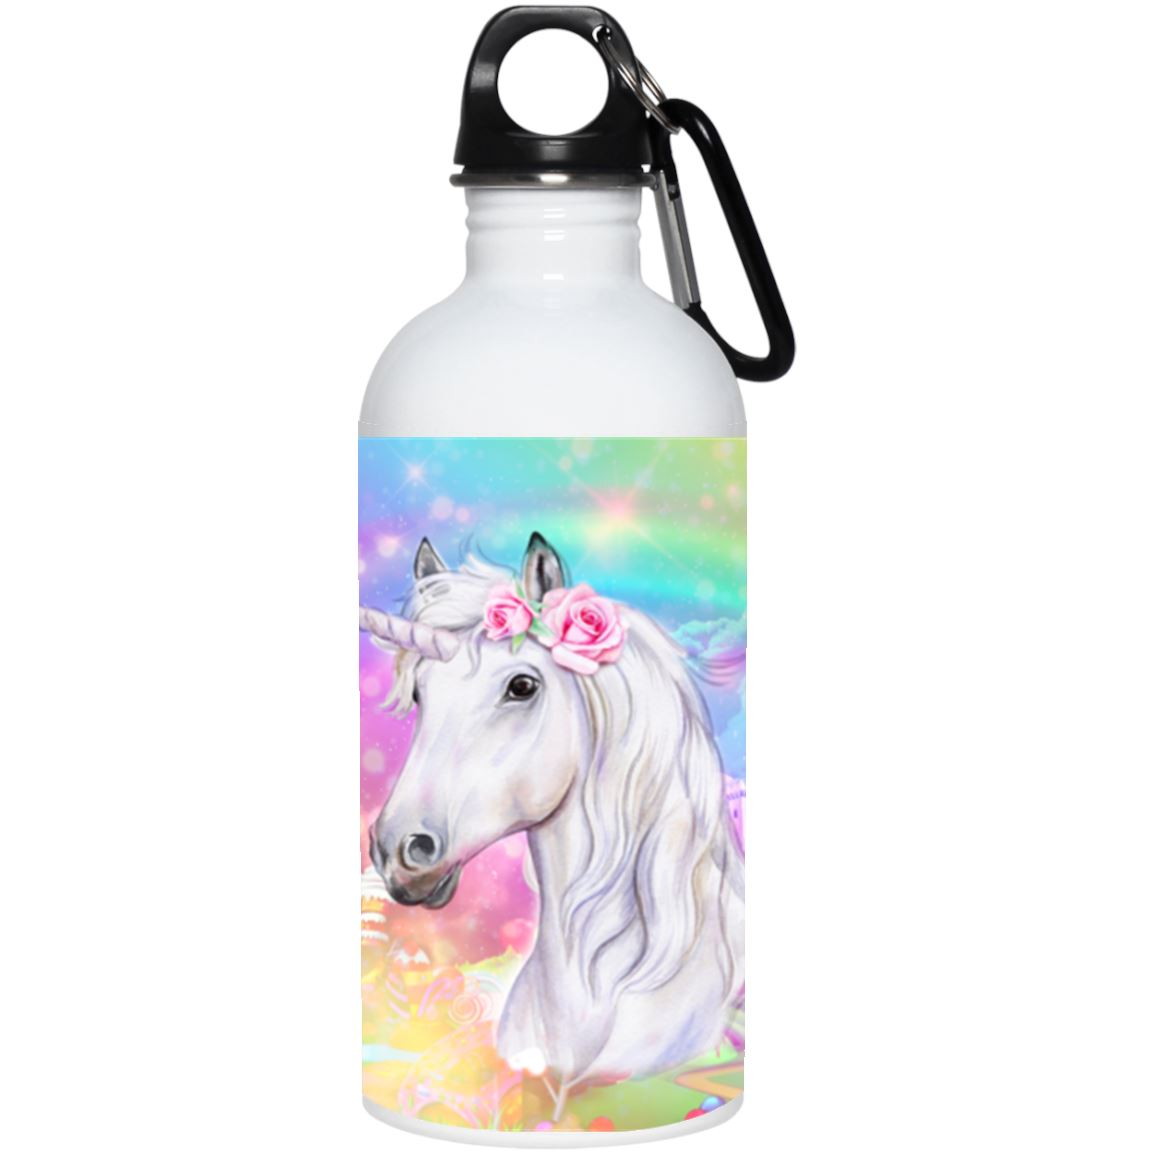 Unicorn Dreamland Stainless Steel Water Bottle Drinkware White One Size